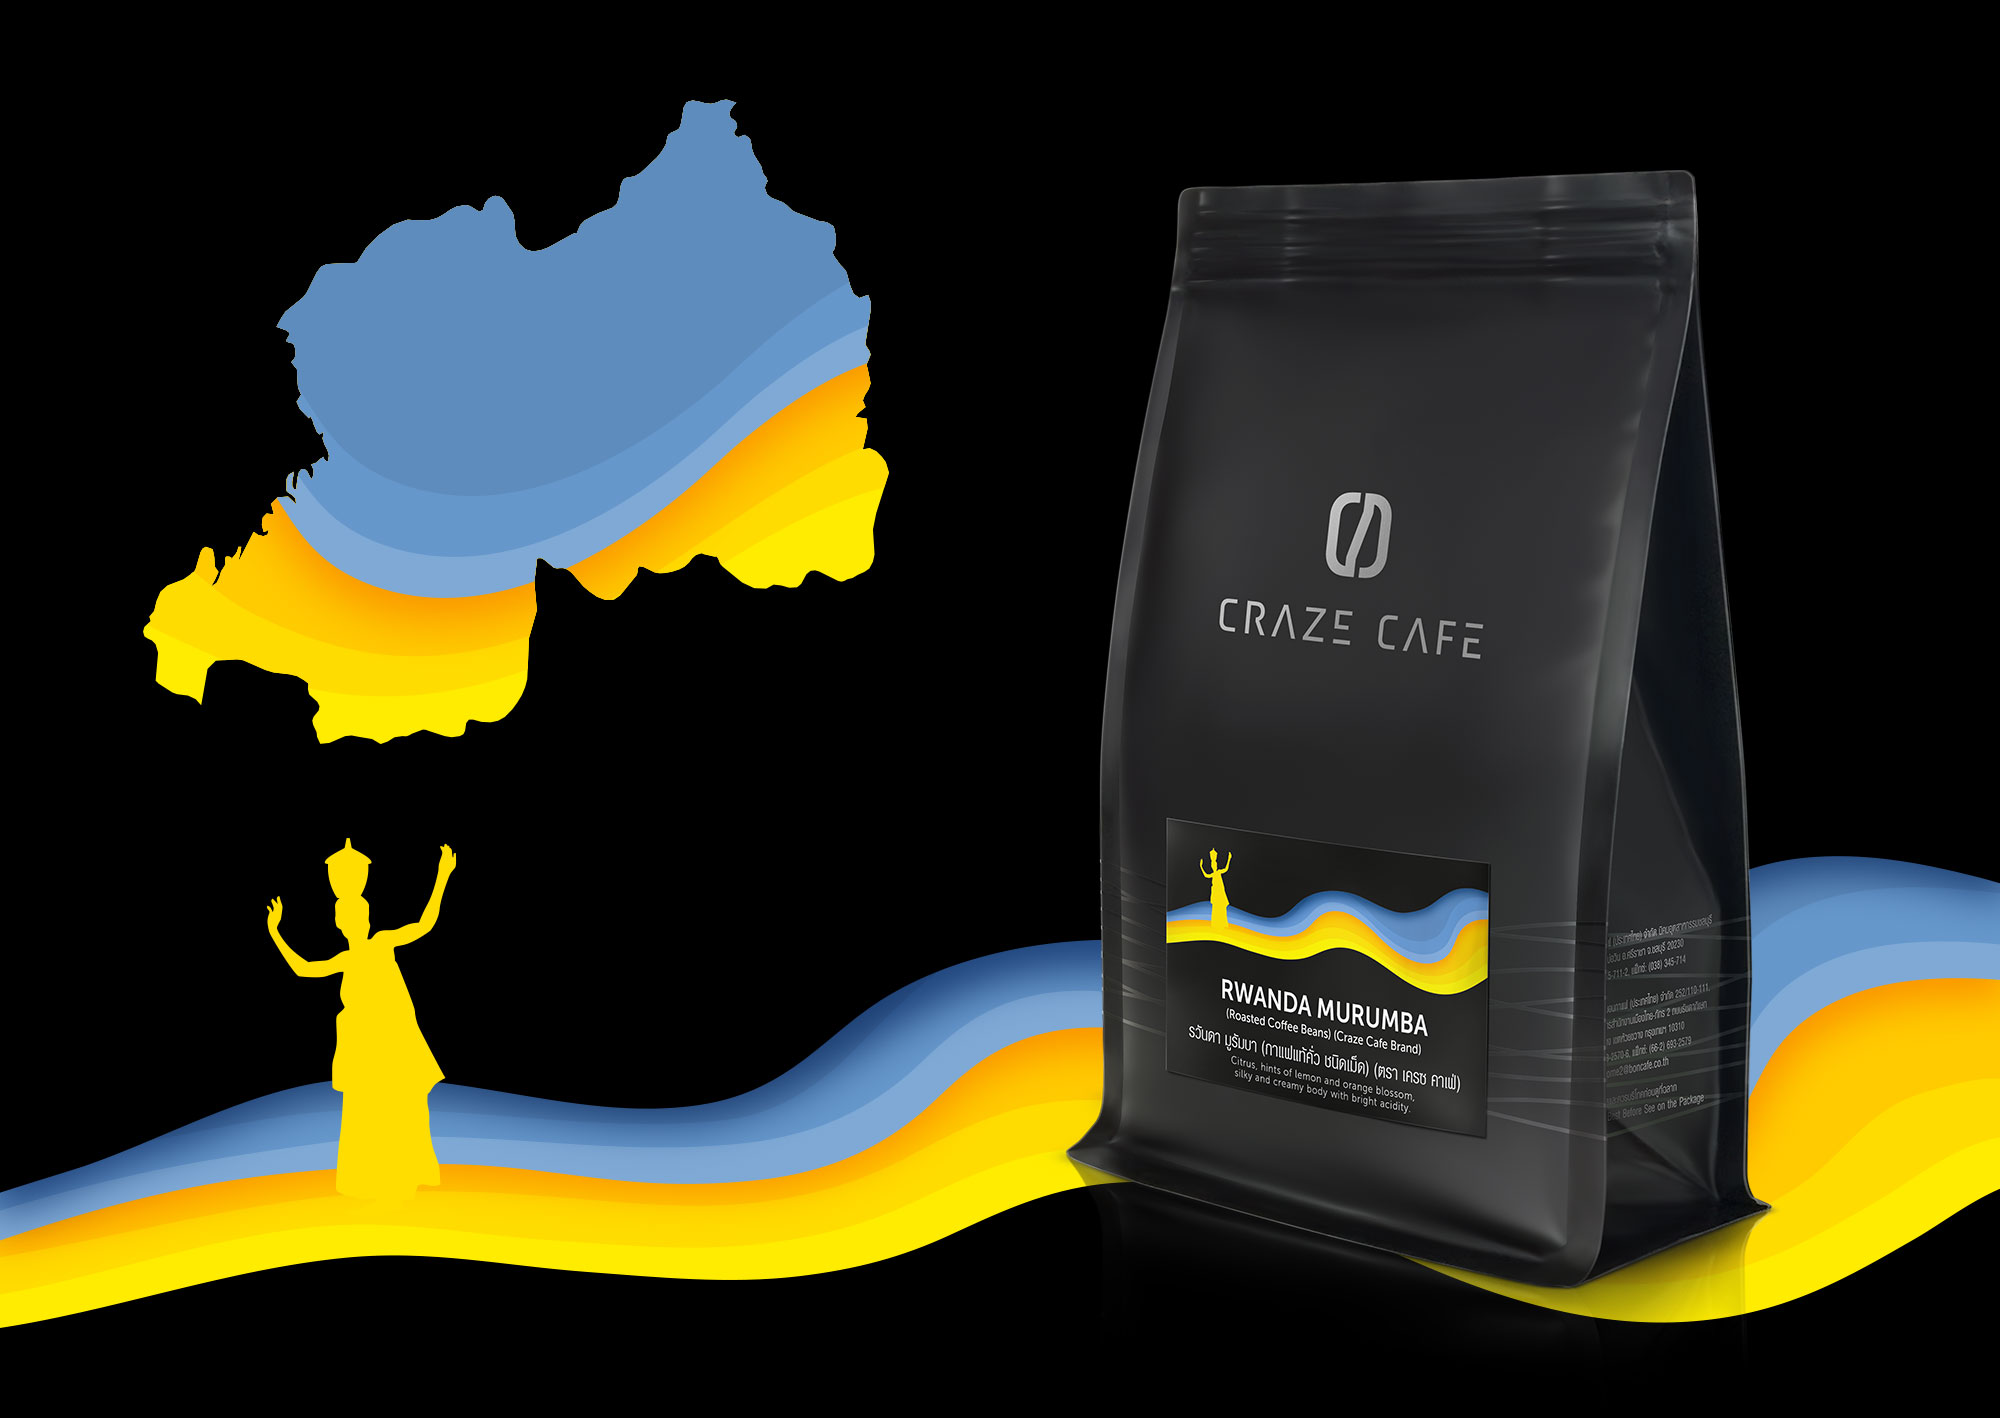 Craze Cafe Rwandan Coffee Packaging